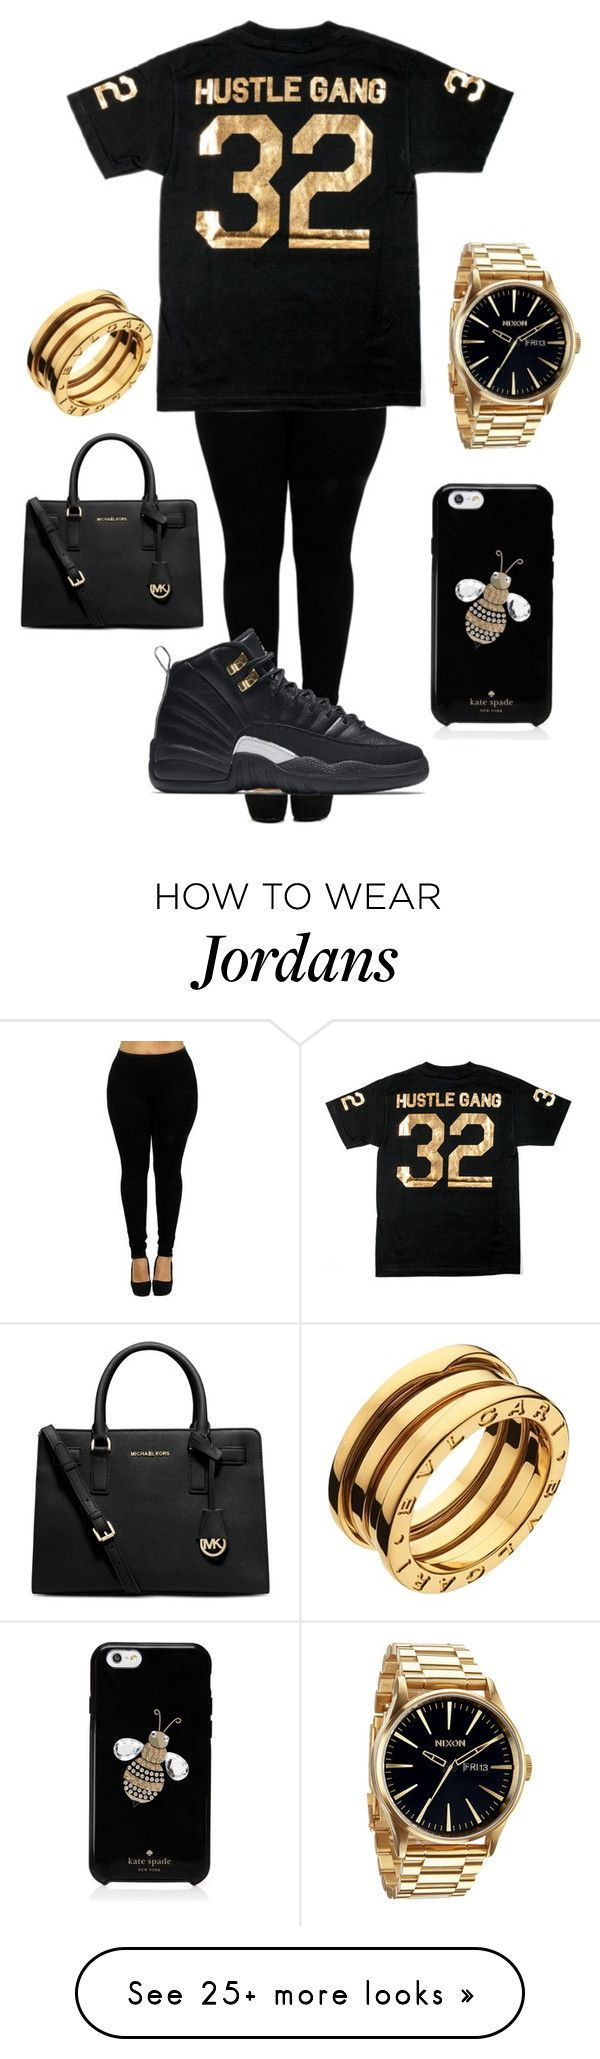 Hustle Gang by therealangel on Polyvore featuring Michael Kors, NIKE, Nixon, Bulgari and Kate Spade